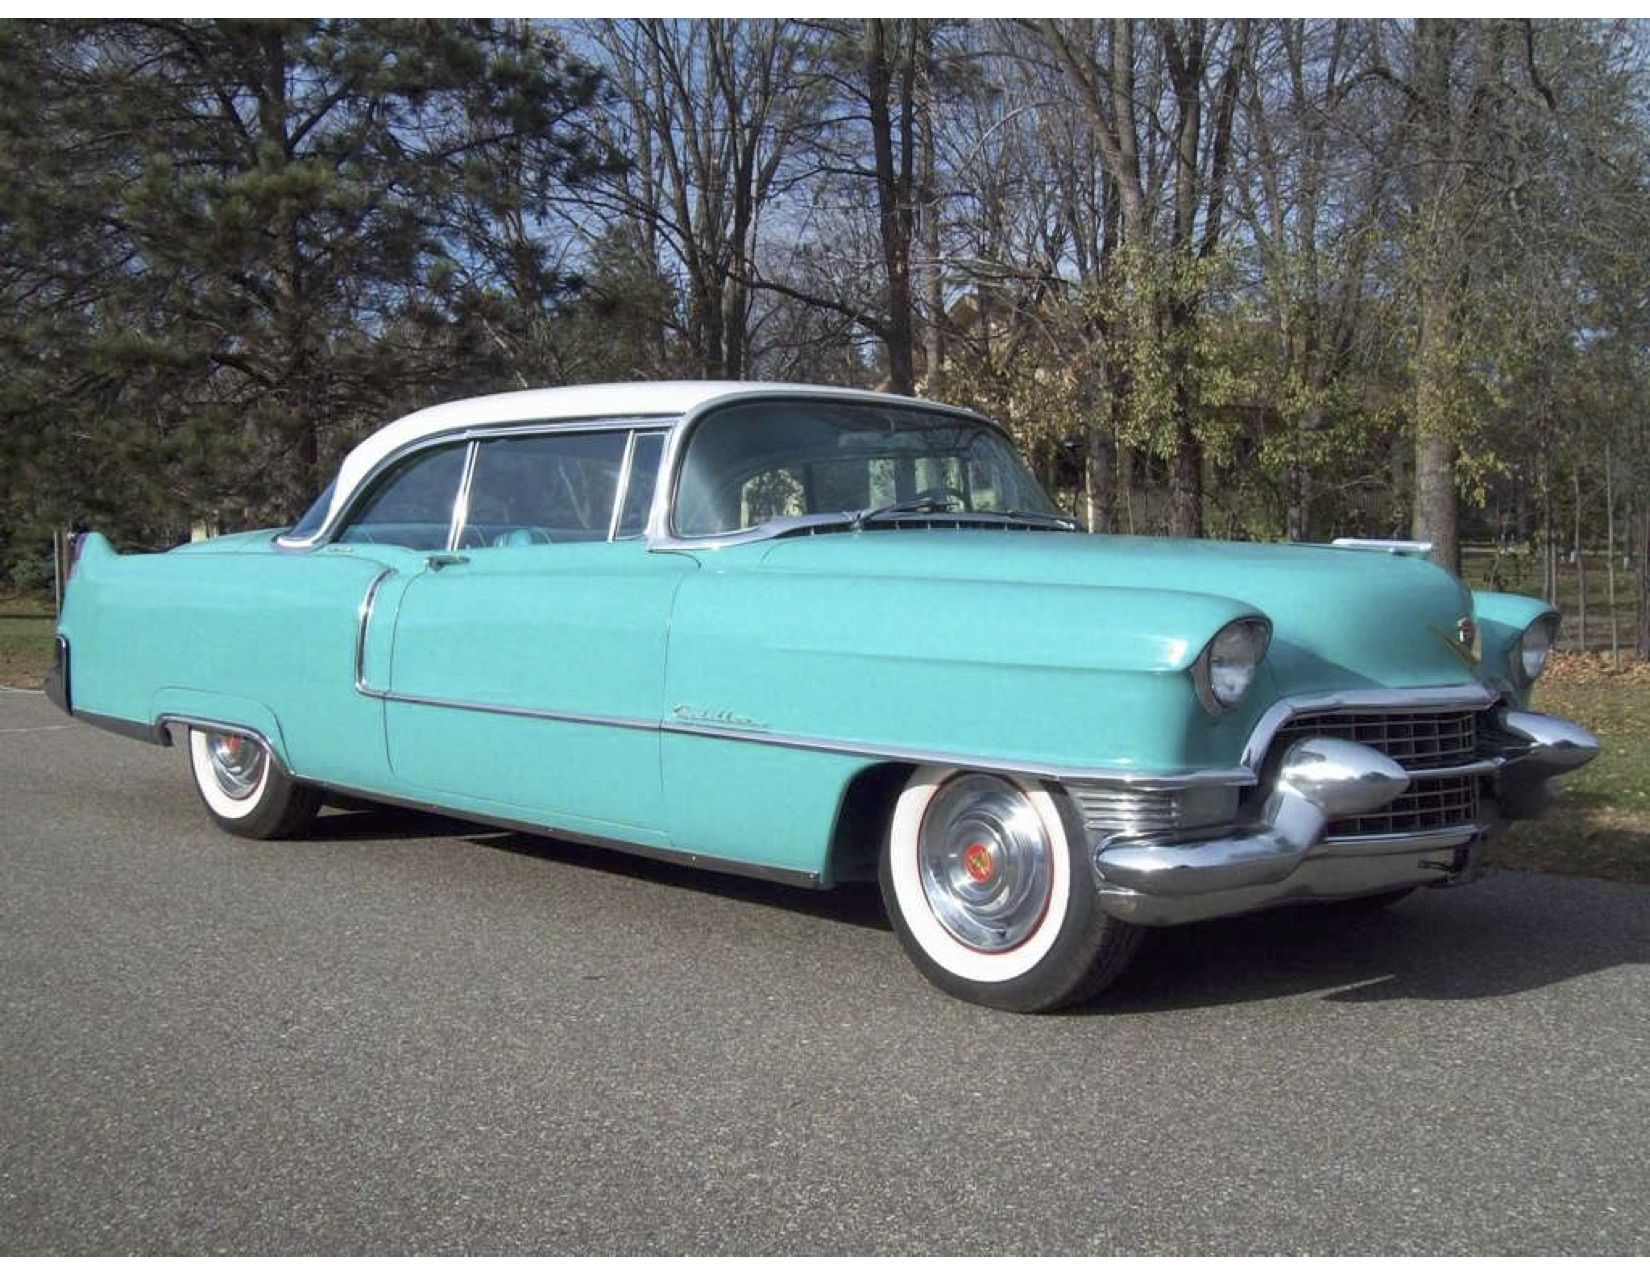 Pin by Jacques Comet on Bucket List | Pinterest | Cadillac, Cars and ...